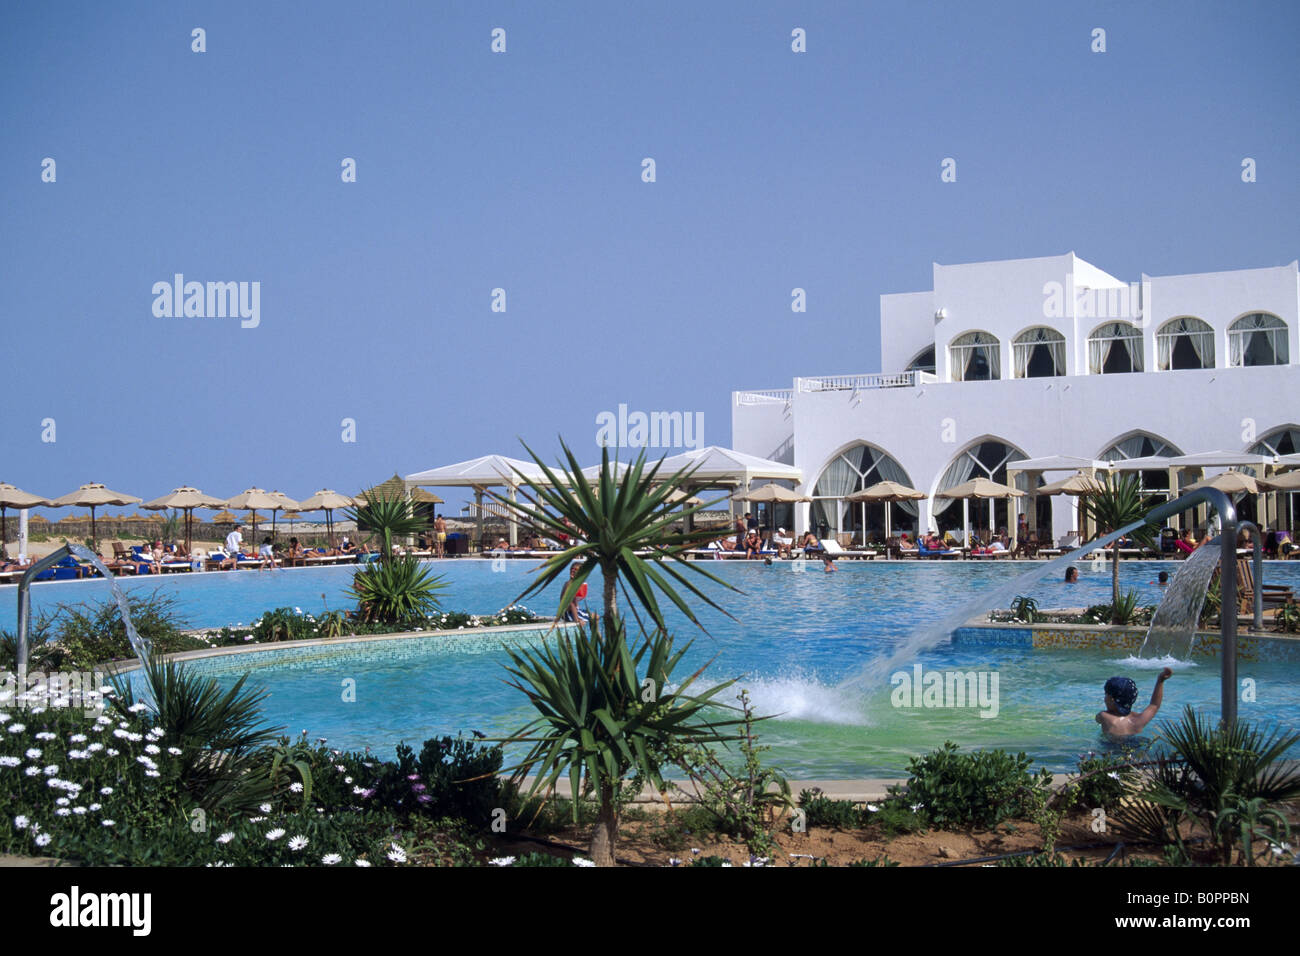 Wonderful Strandhotel Djerba Tunesien   Stock Image